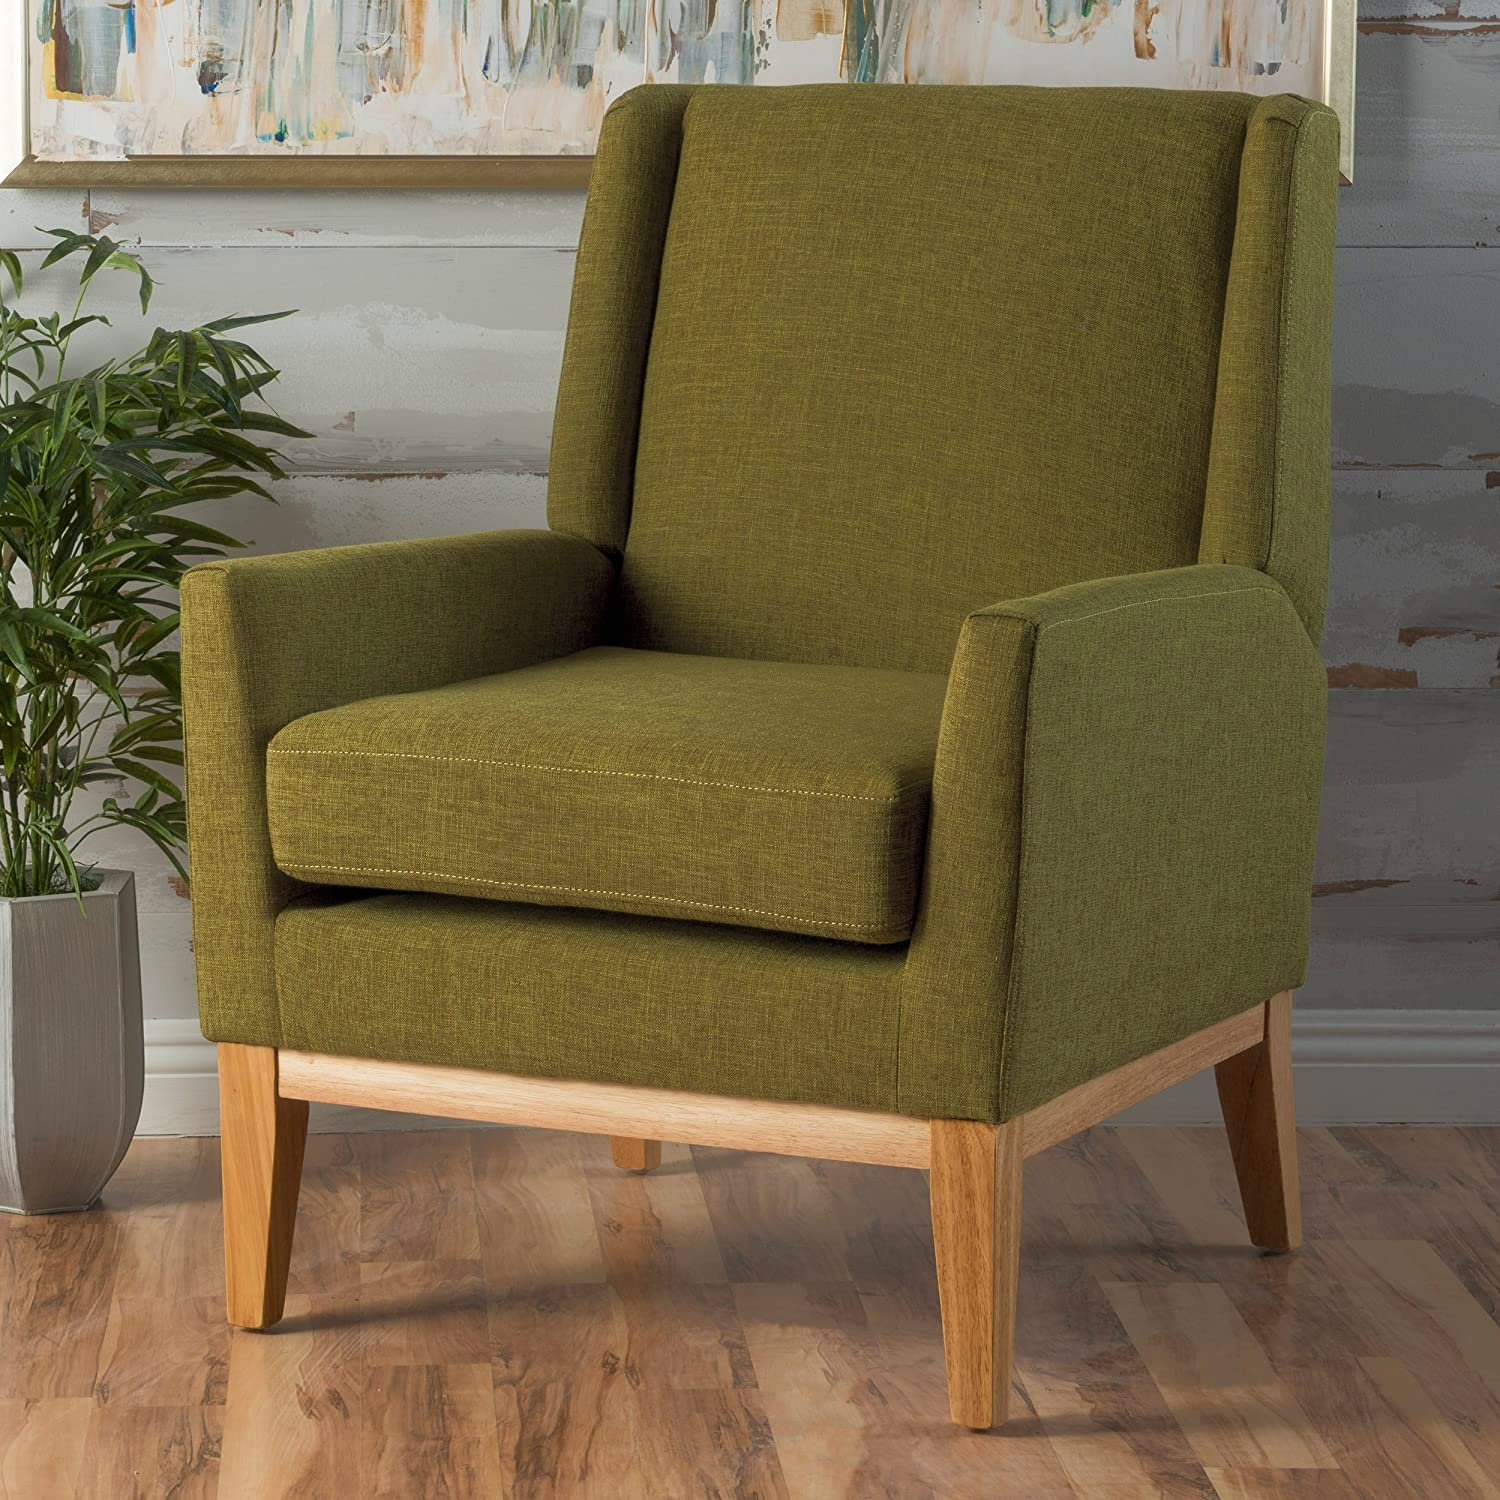 Christopher Knight Home 299399 Aurla Mid-Century Fabric Accent Chair, Green